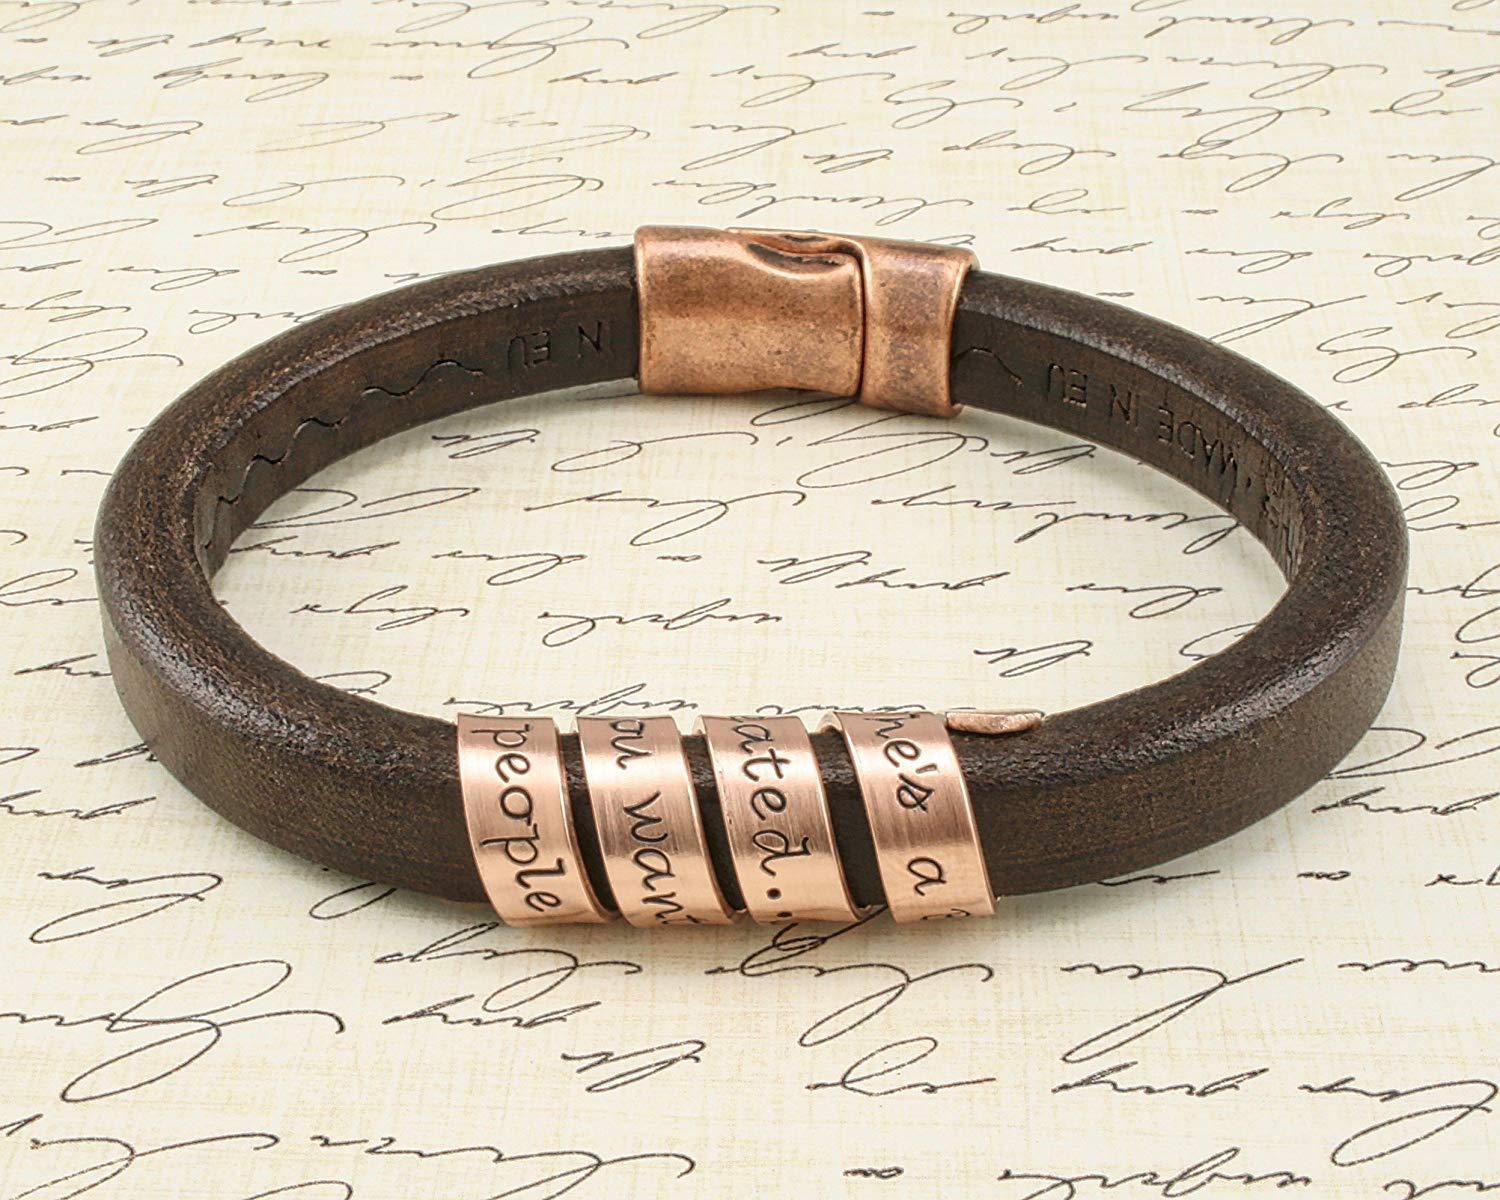 57a40b2b5fe8 Get Quotations · Men s COPPER SPIRAL Secret Message bracelet - CUSTOM  MESSAGE - On Brown Leather - Hand Stamped